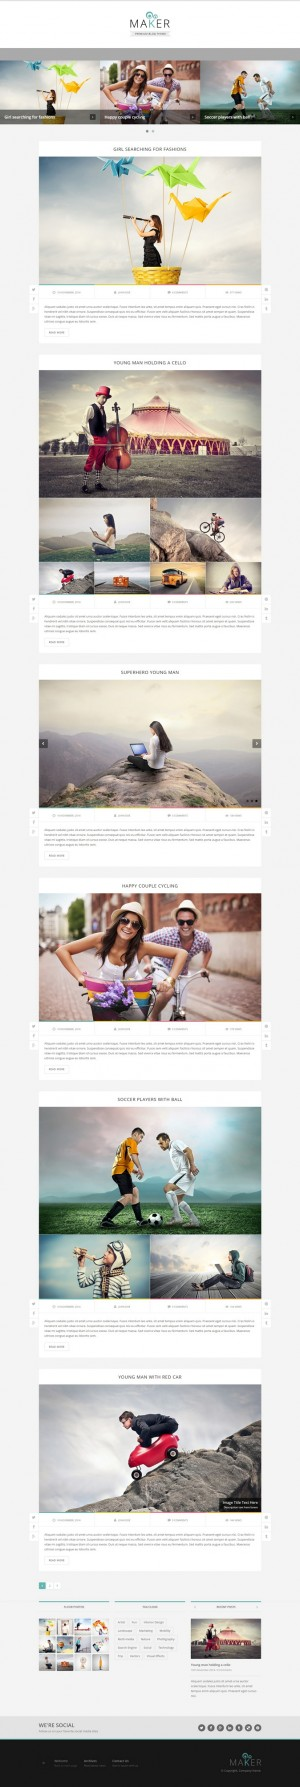 Maker is a super responsive and retina ready WordPress theme with unlimited colors and 7 post fo ...